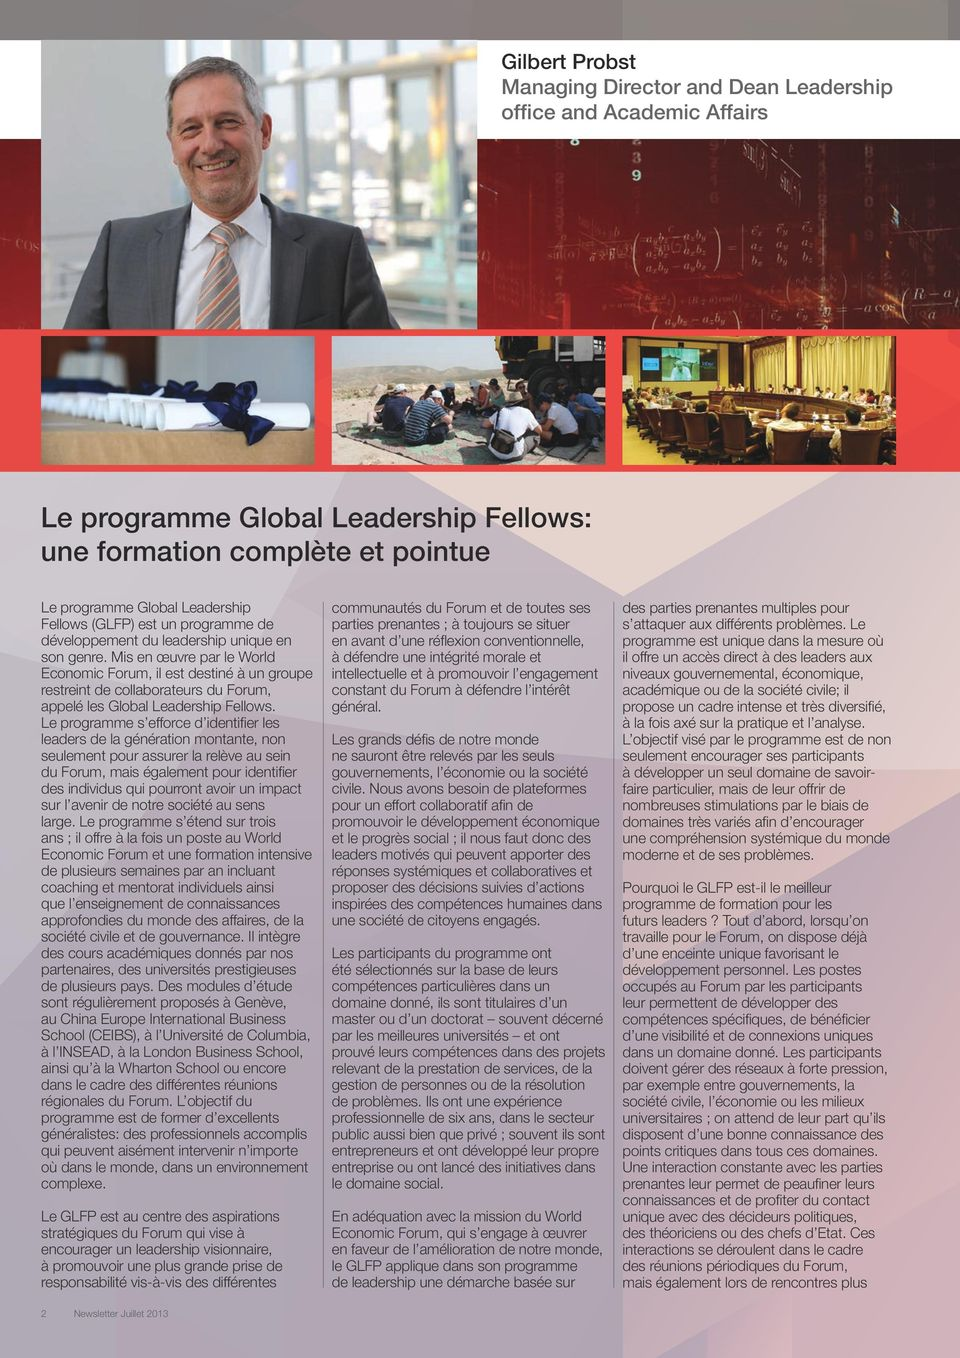 Mis en œuvre par le World Economic Forum, il est destiné à un groupe restreint de collaborateurs du Forum, appelé les Global Leadership Fellows.